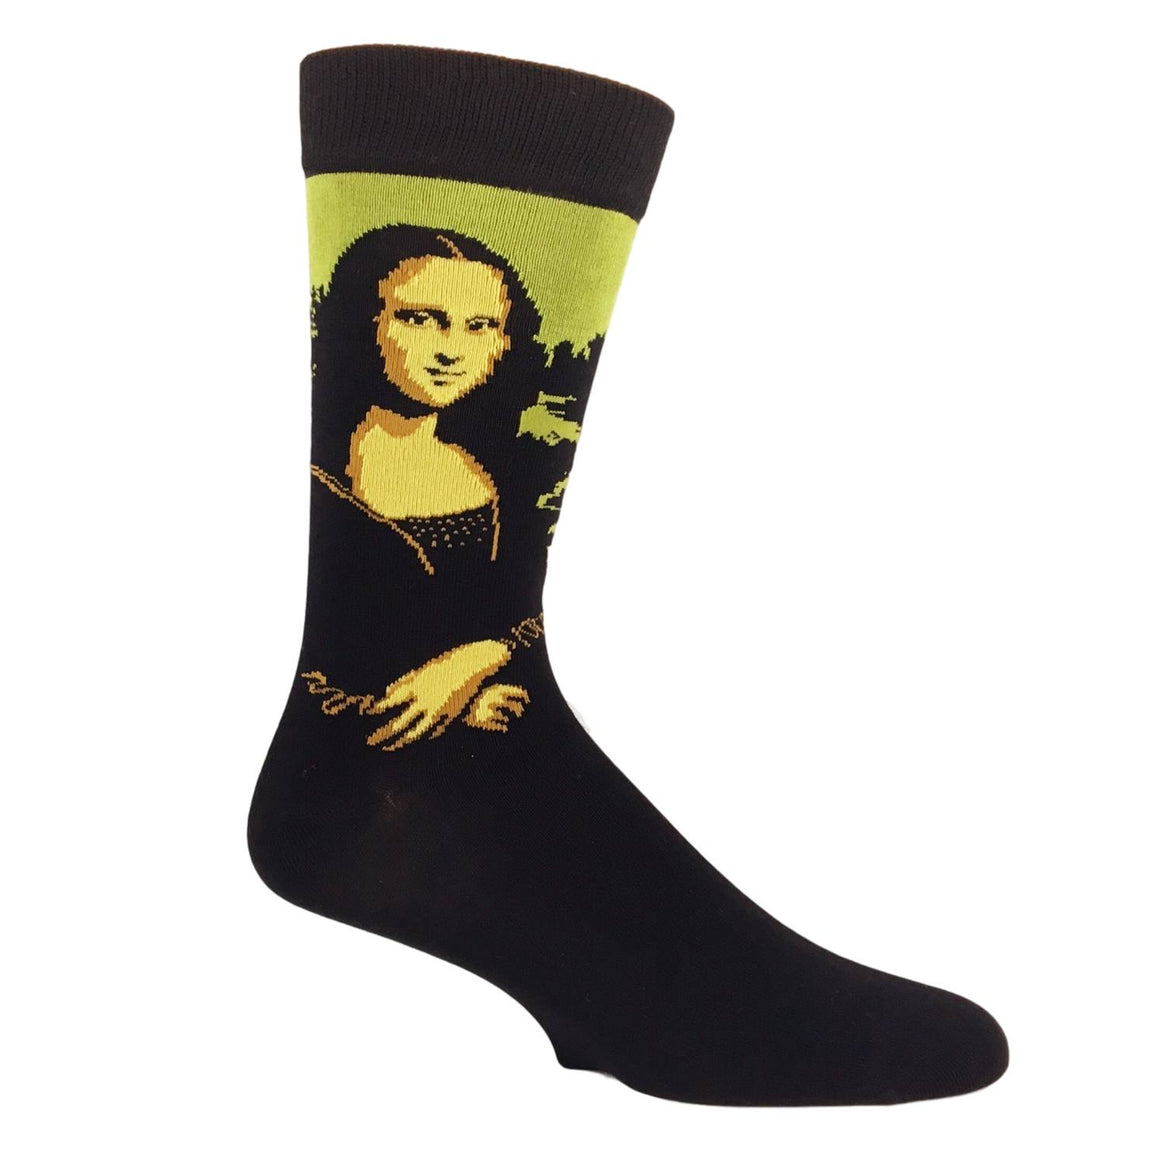 Socks - Mona Lisa Bamboo Art Socks